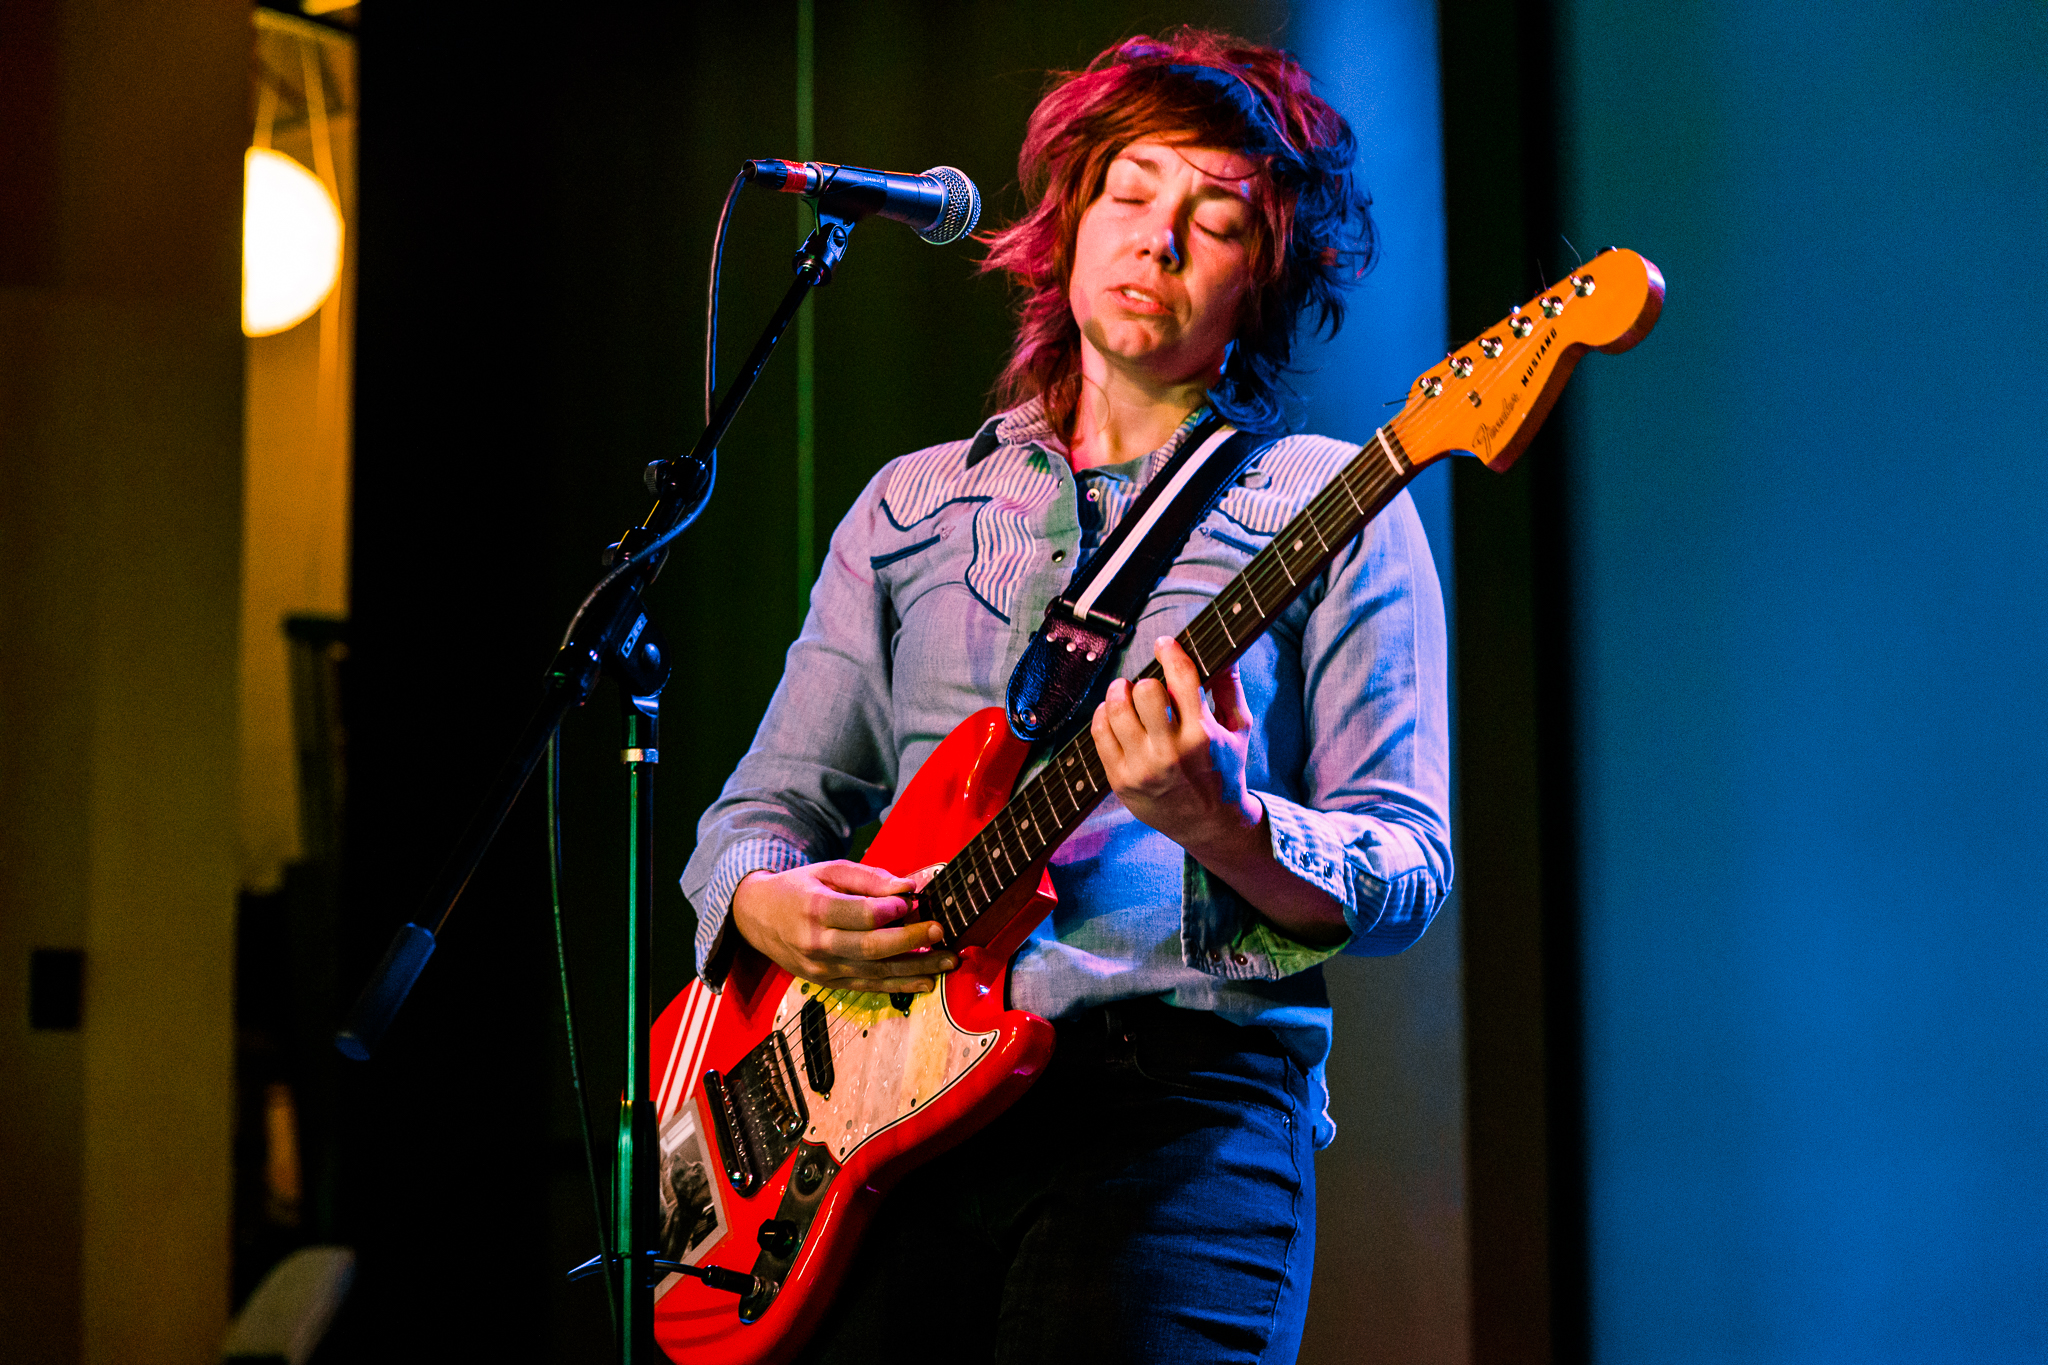 H.C. McEntire performing at Hopscotch Music Festival 2017 in Raleigh, NC - 9/9/2017 (photo by Matt Condon / @arcane93)